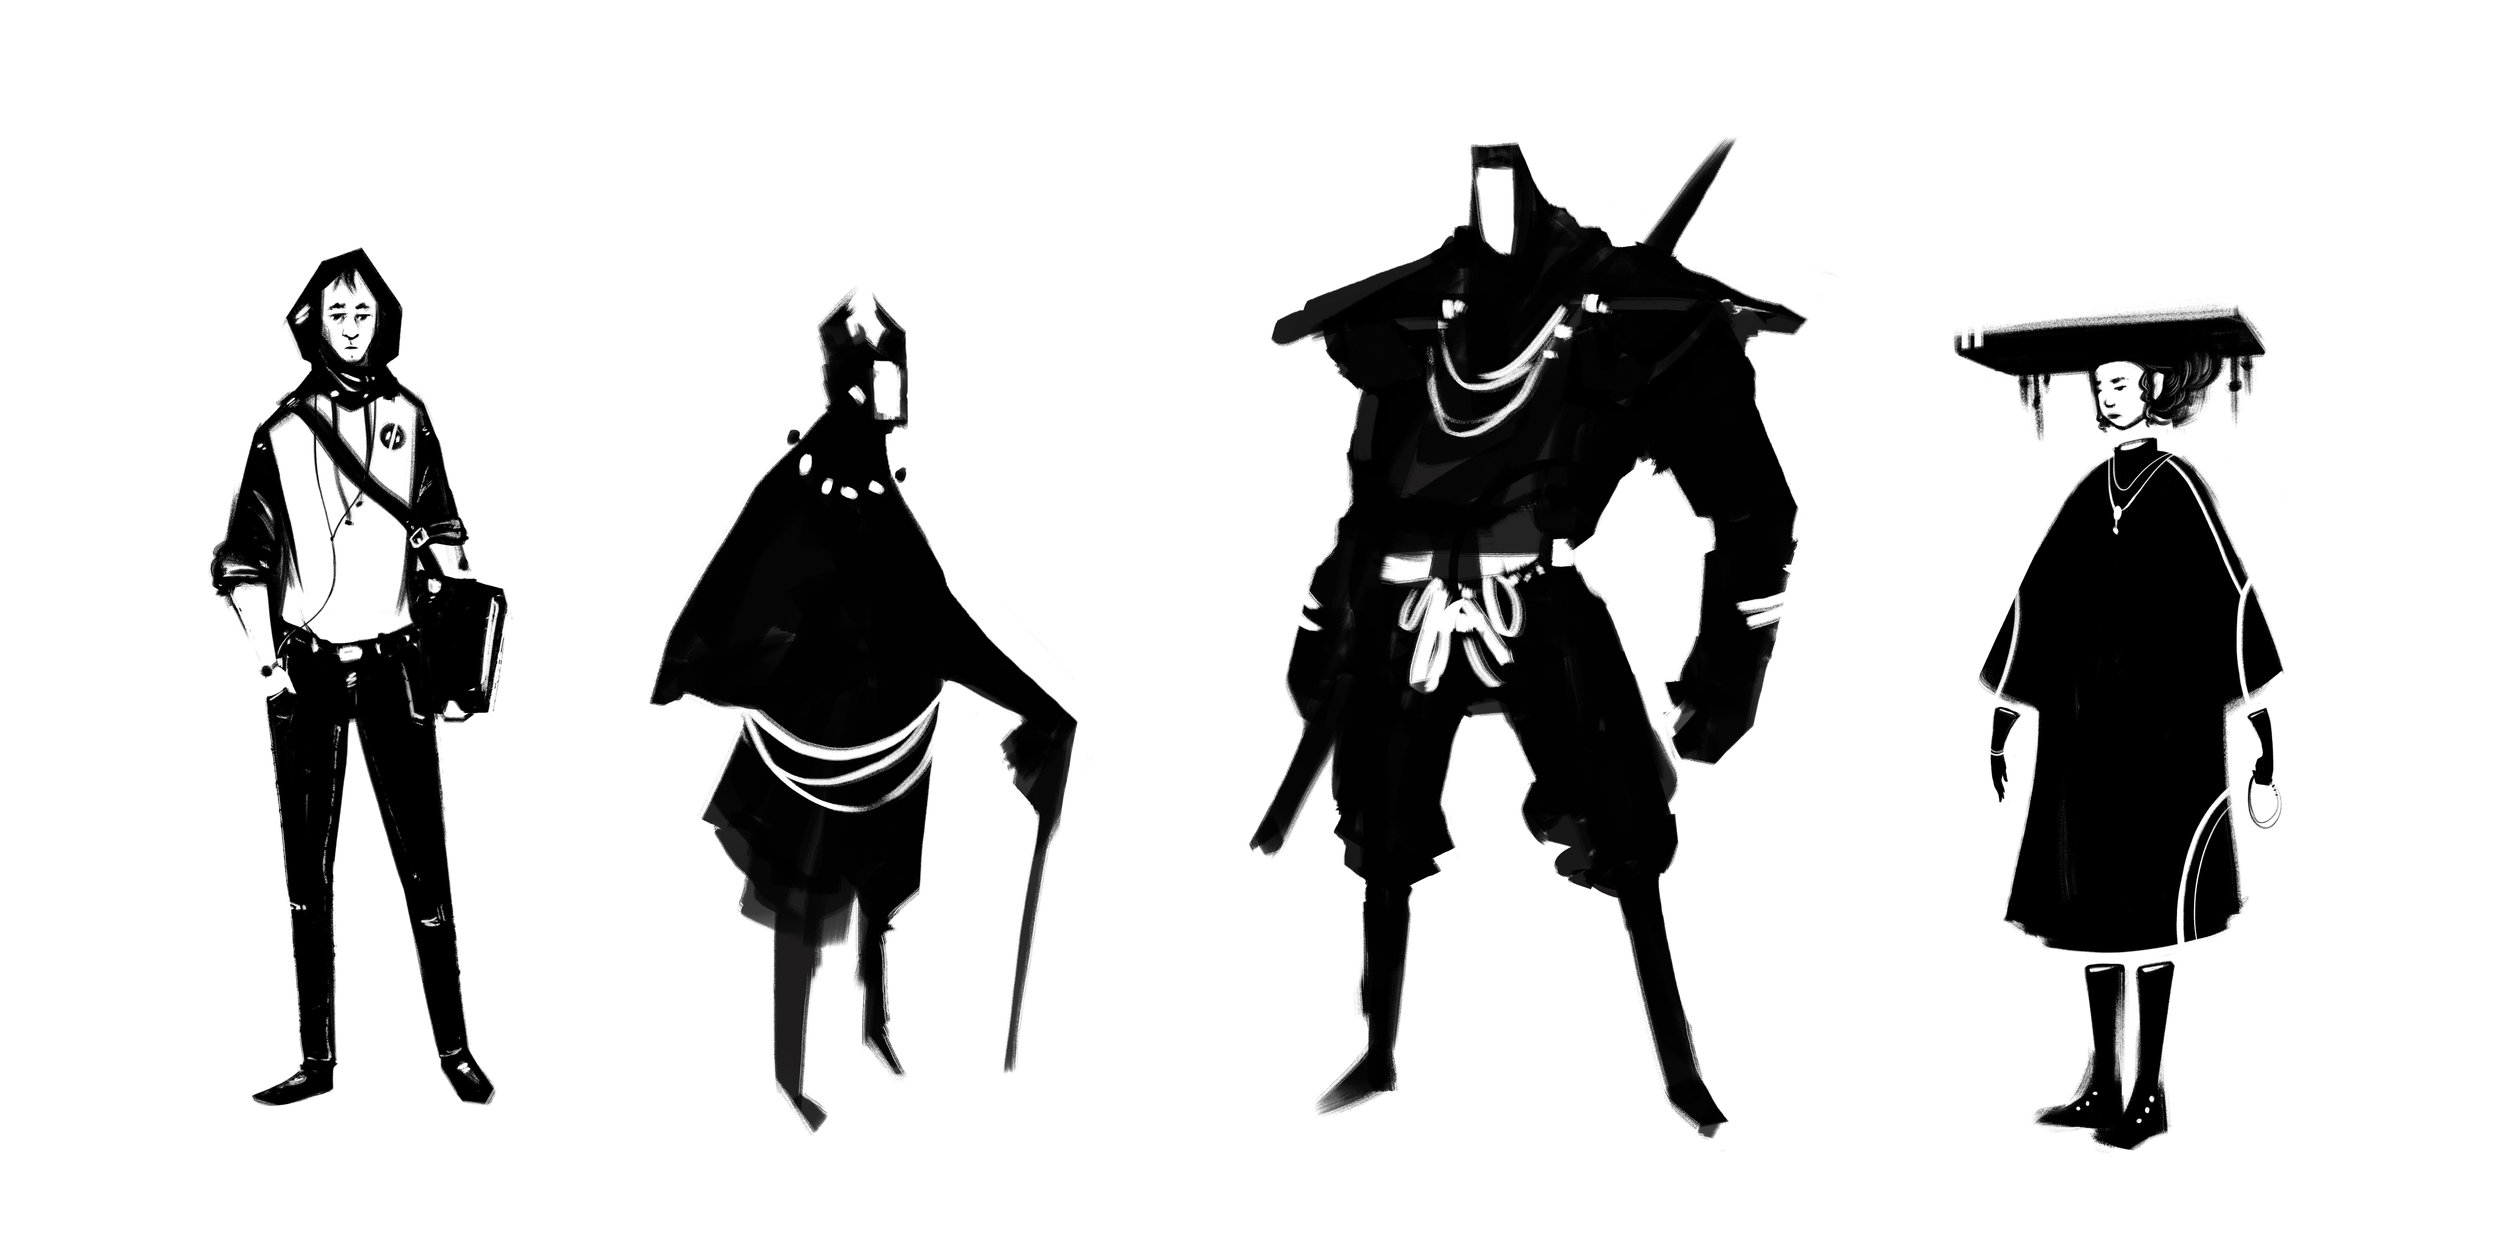 Character-Concept-Silhouettes-2018.jpg